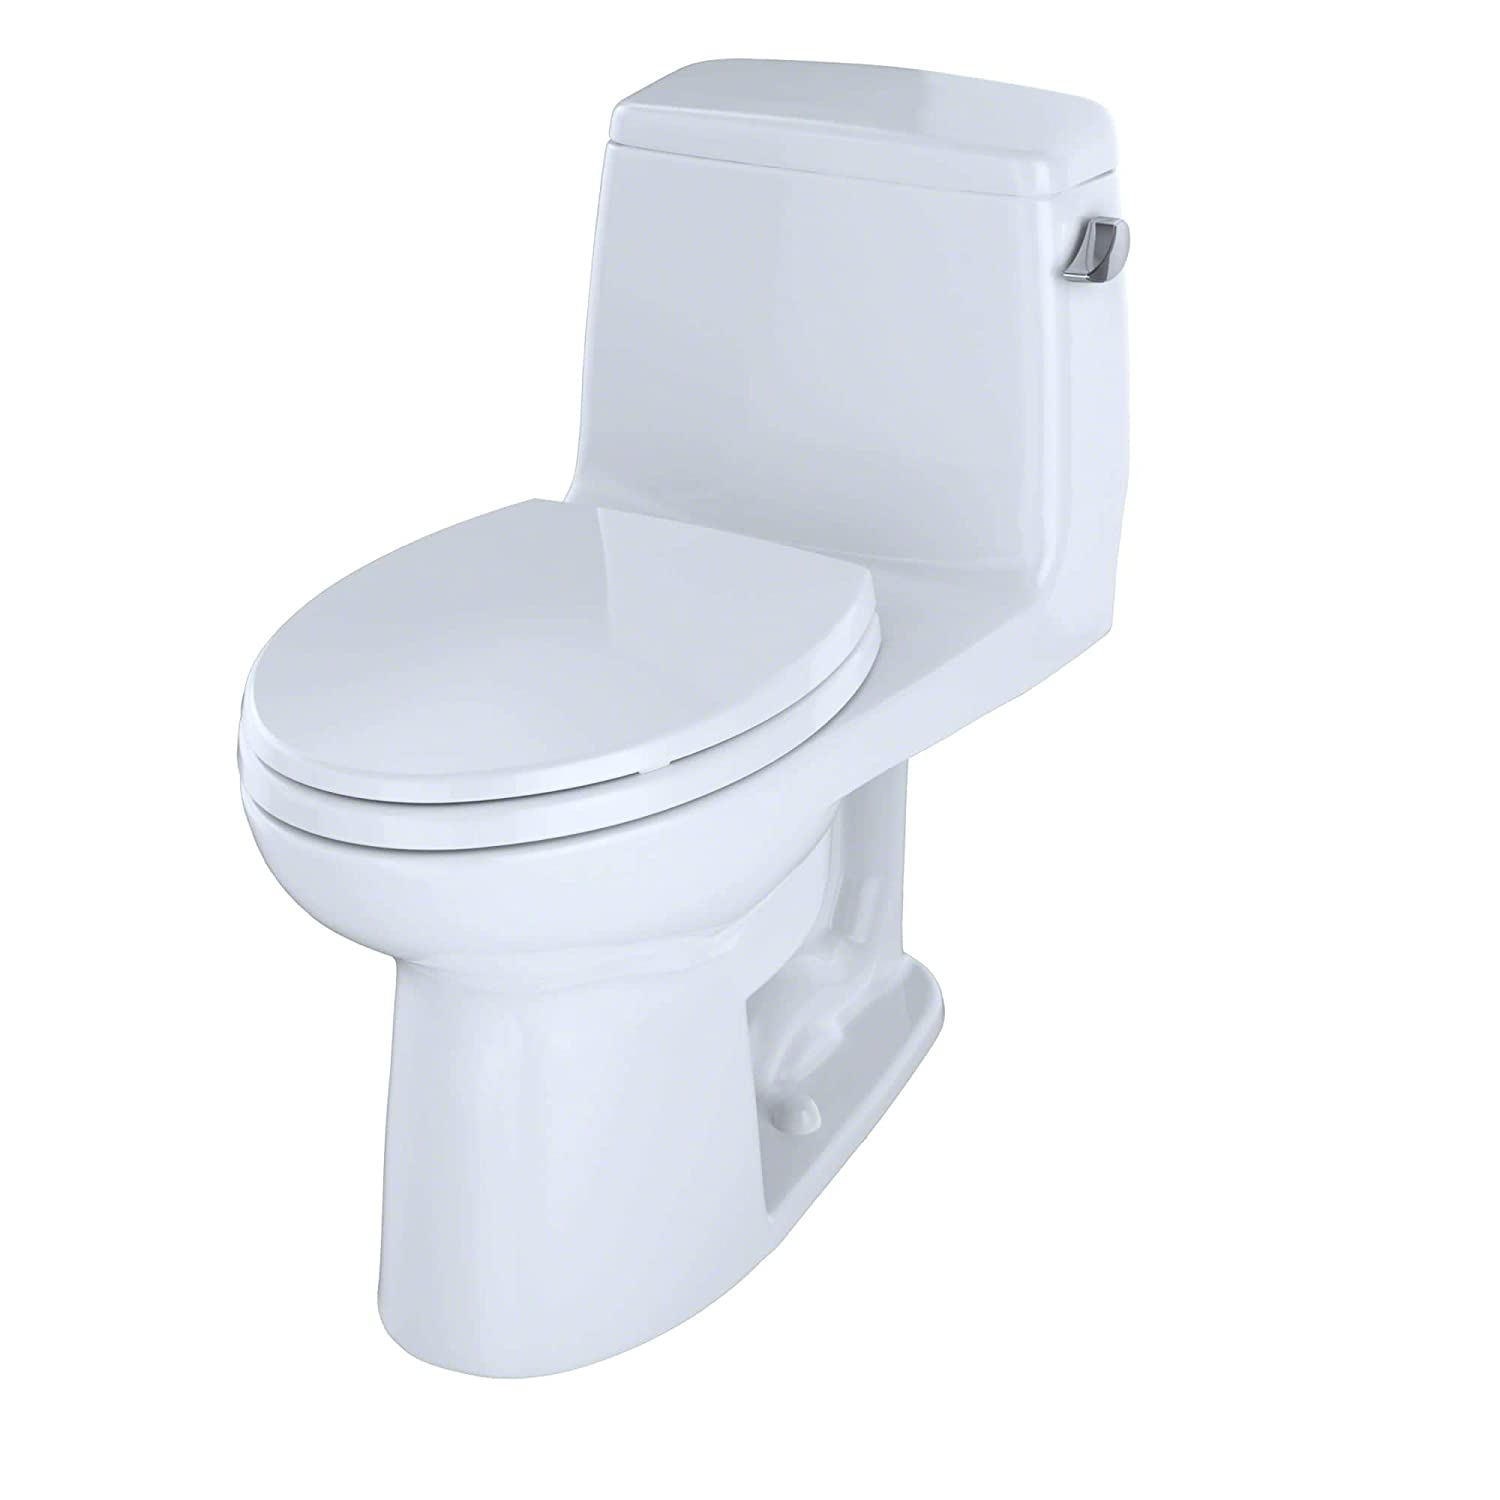 Top 5 Best 1.28 GPF Toilets Online Reviews in 2020 5